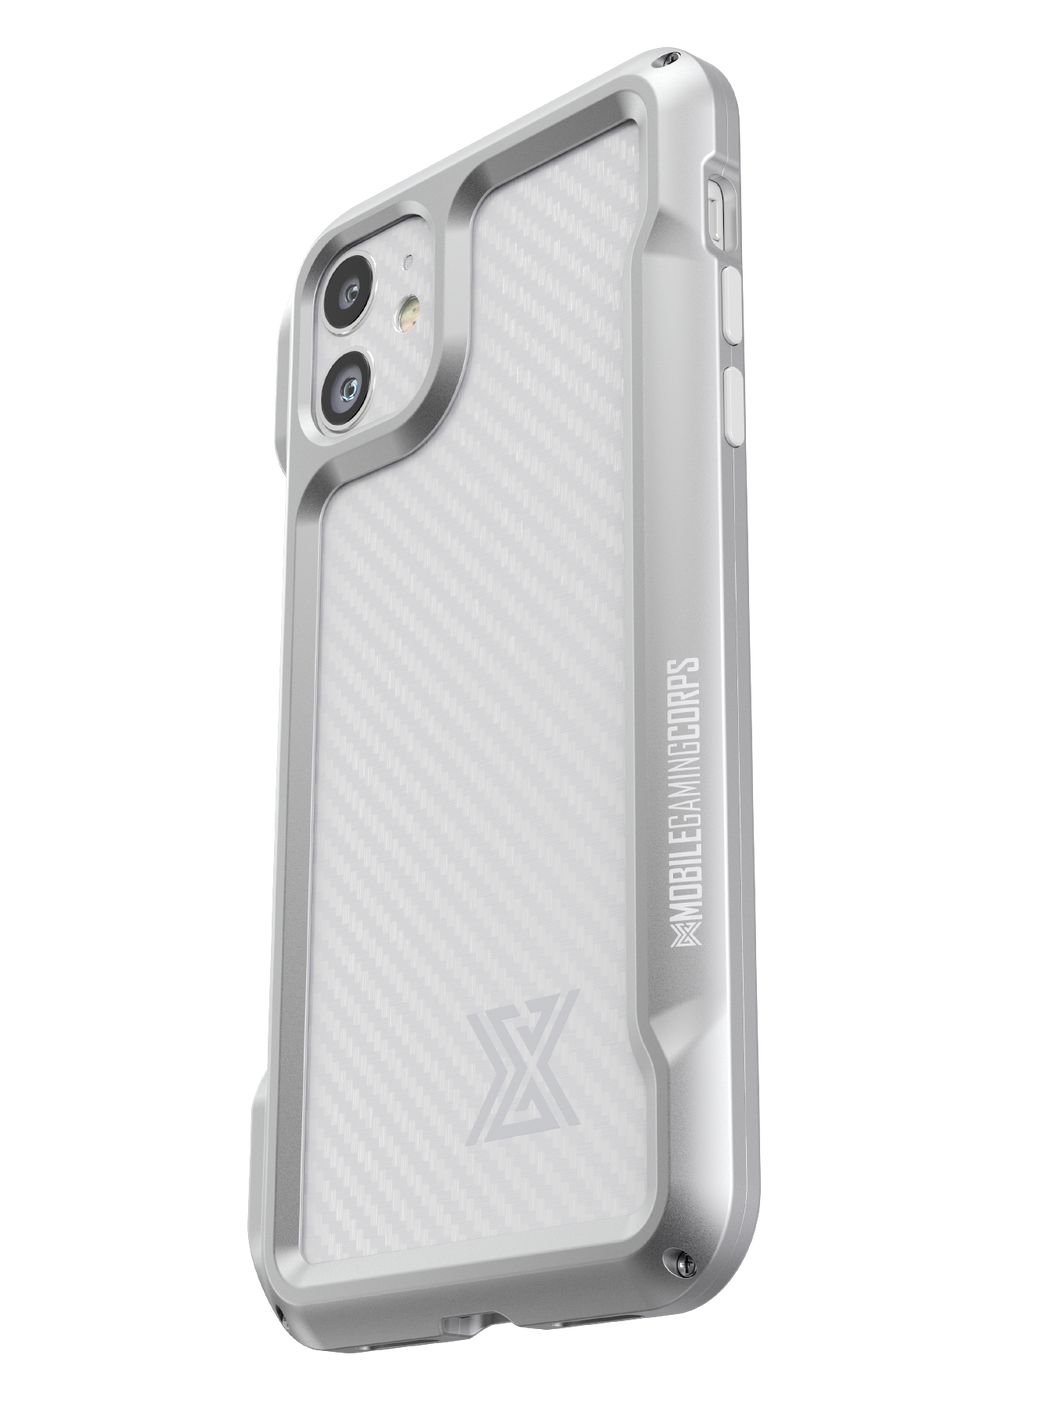 Aura Gaming Case for iPhone 11 - MERCURI